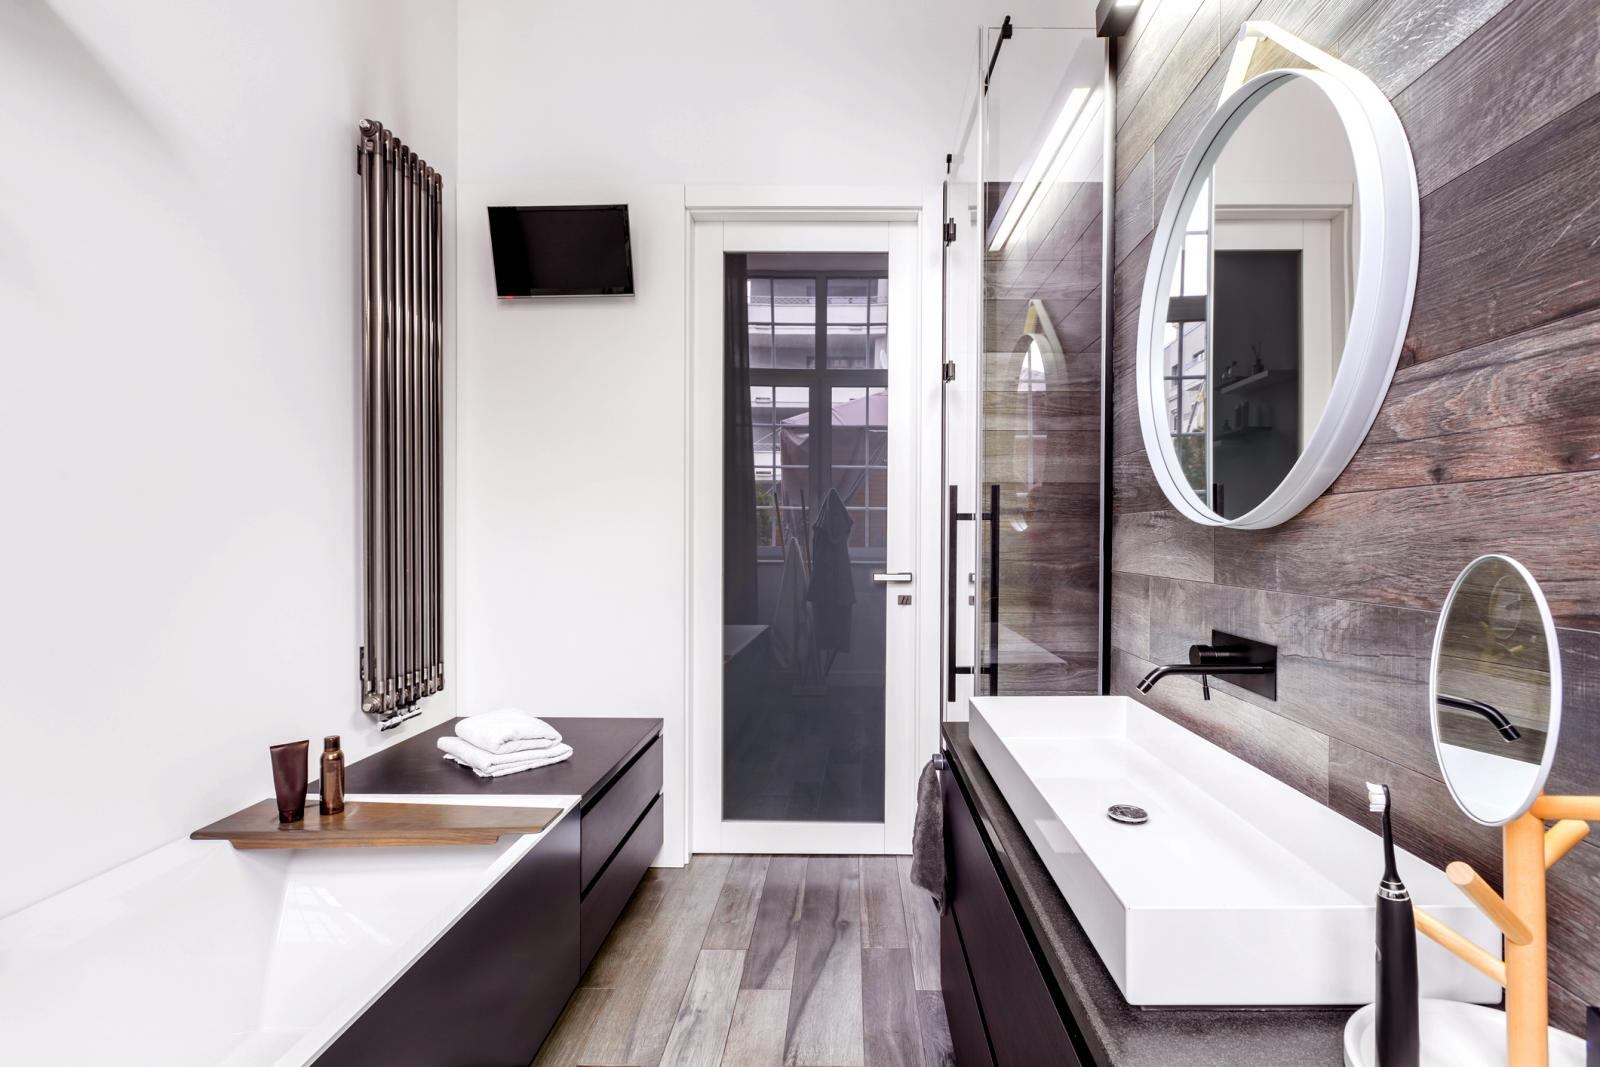 10 Small Bathroom Design Ideas: Make the Most of Your Space